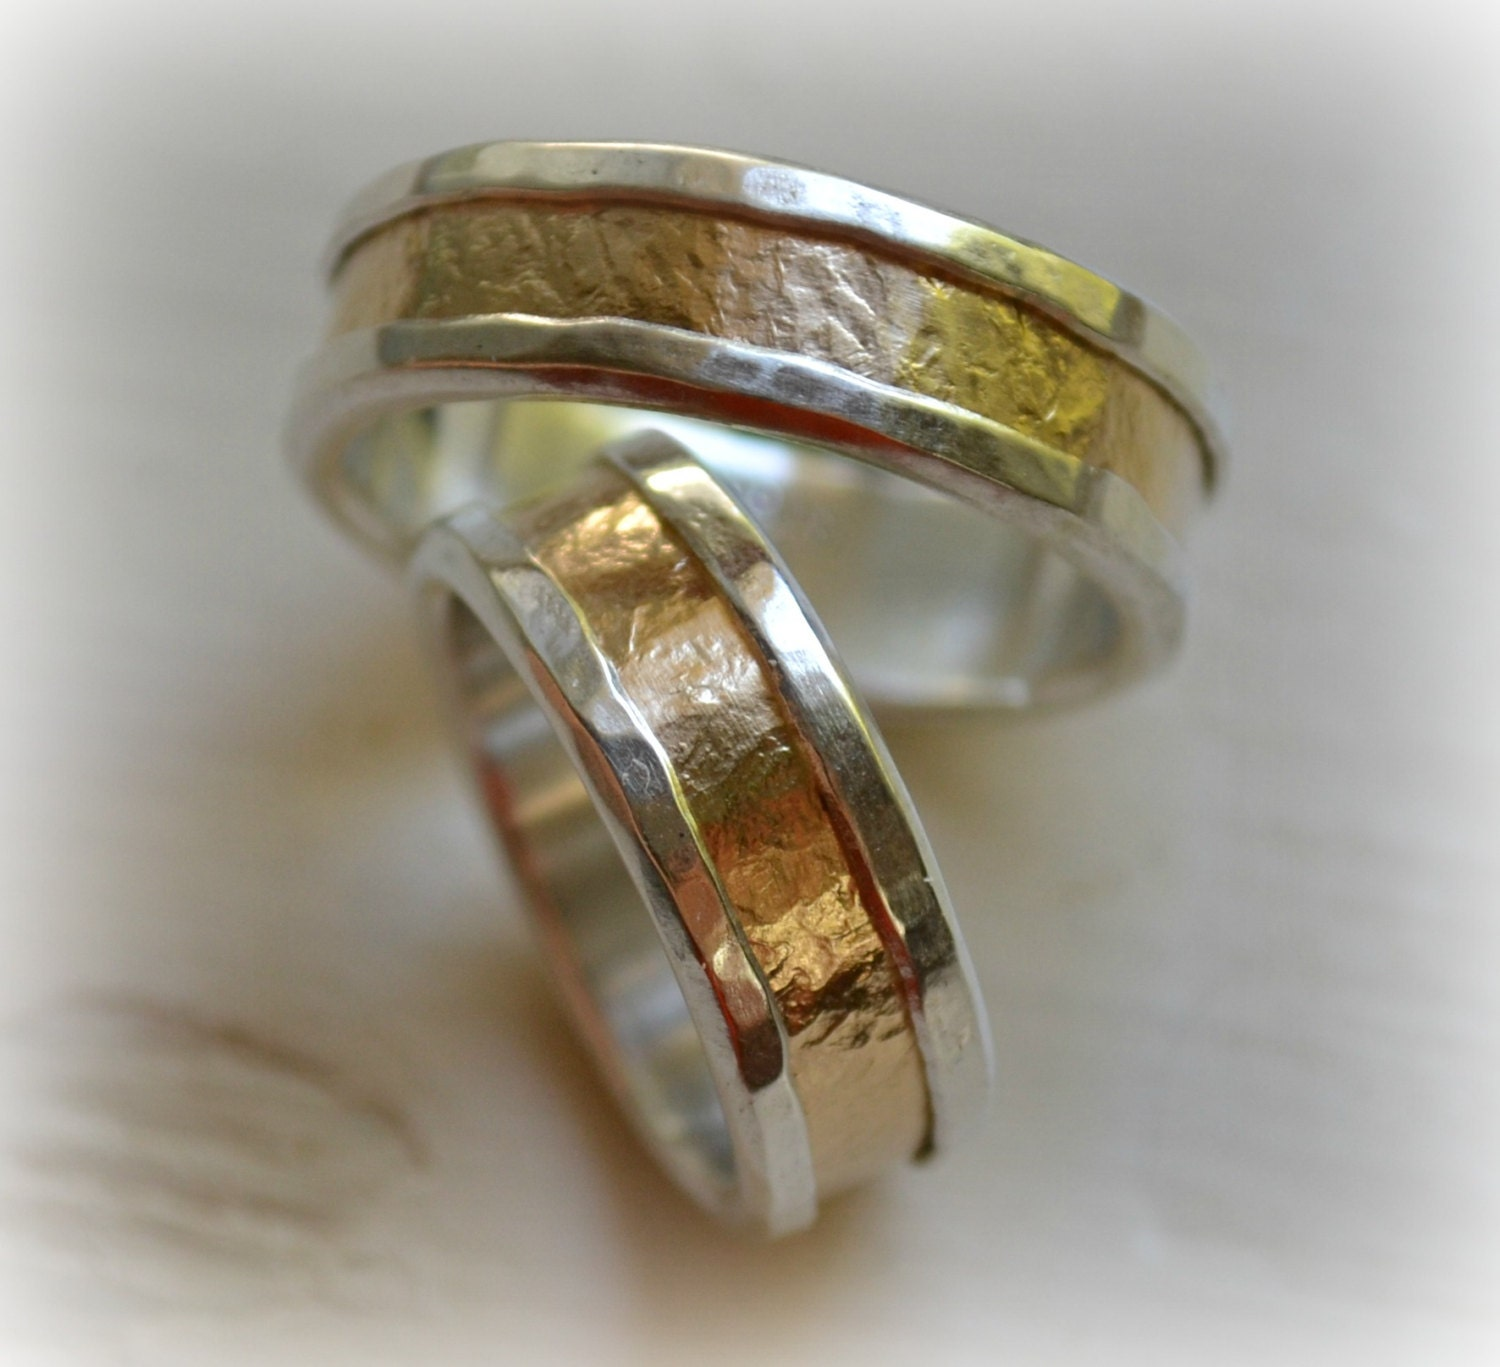 His And Hers Wedding Bands Artisan Designed By MaggiDesigns